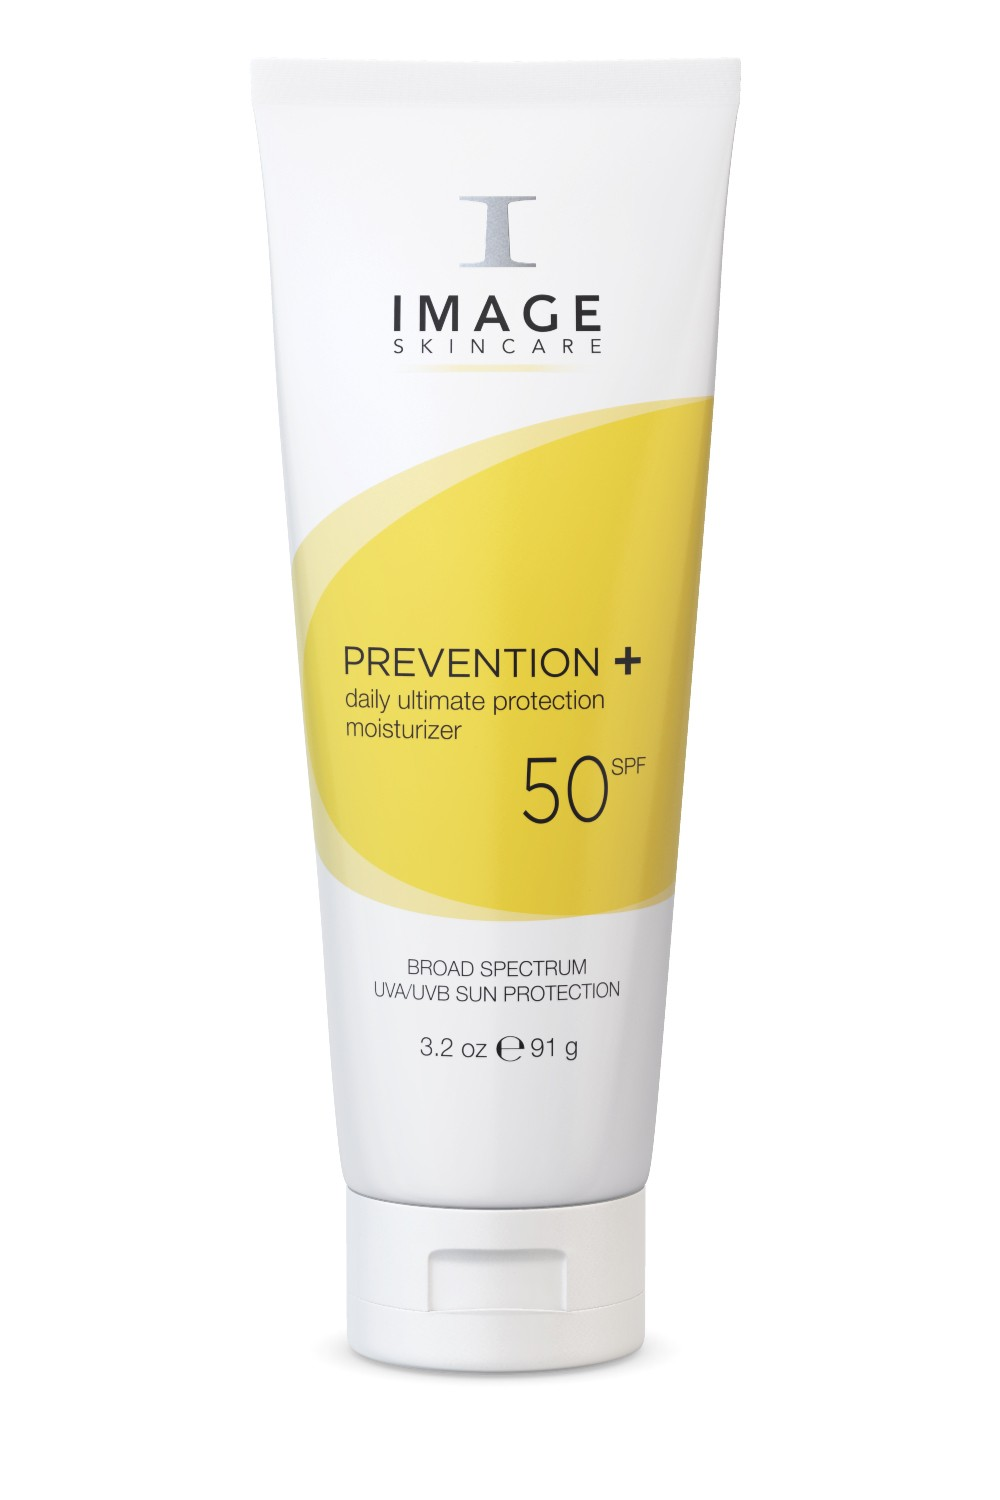 Image Skincare - Prevention+ Daily Ultimate Protection Moisturizer SPF 50